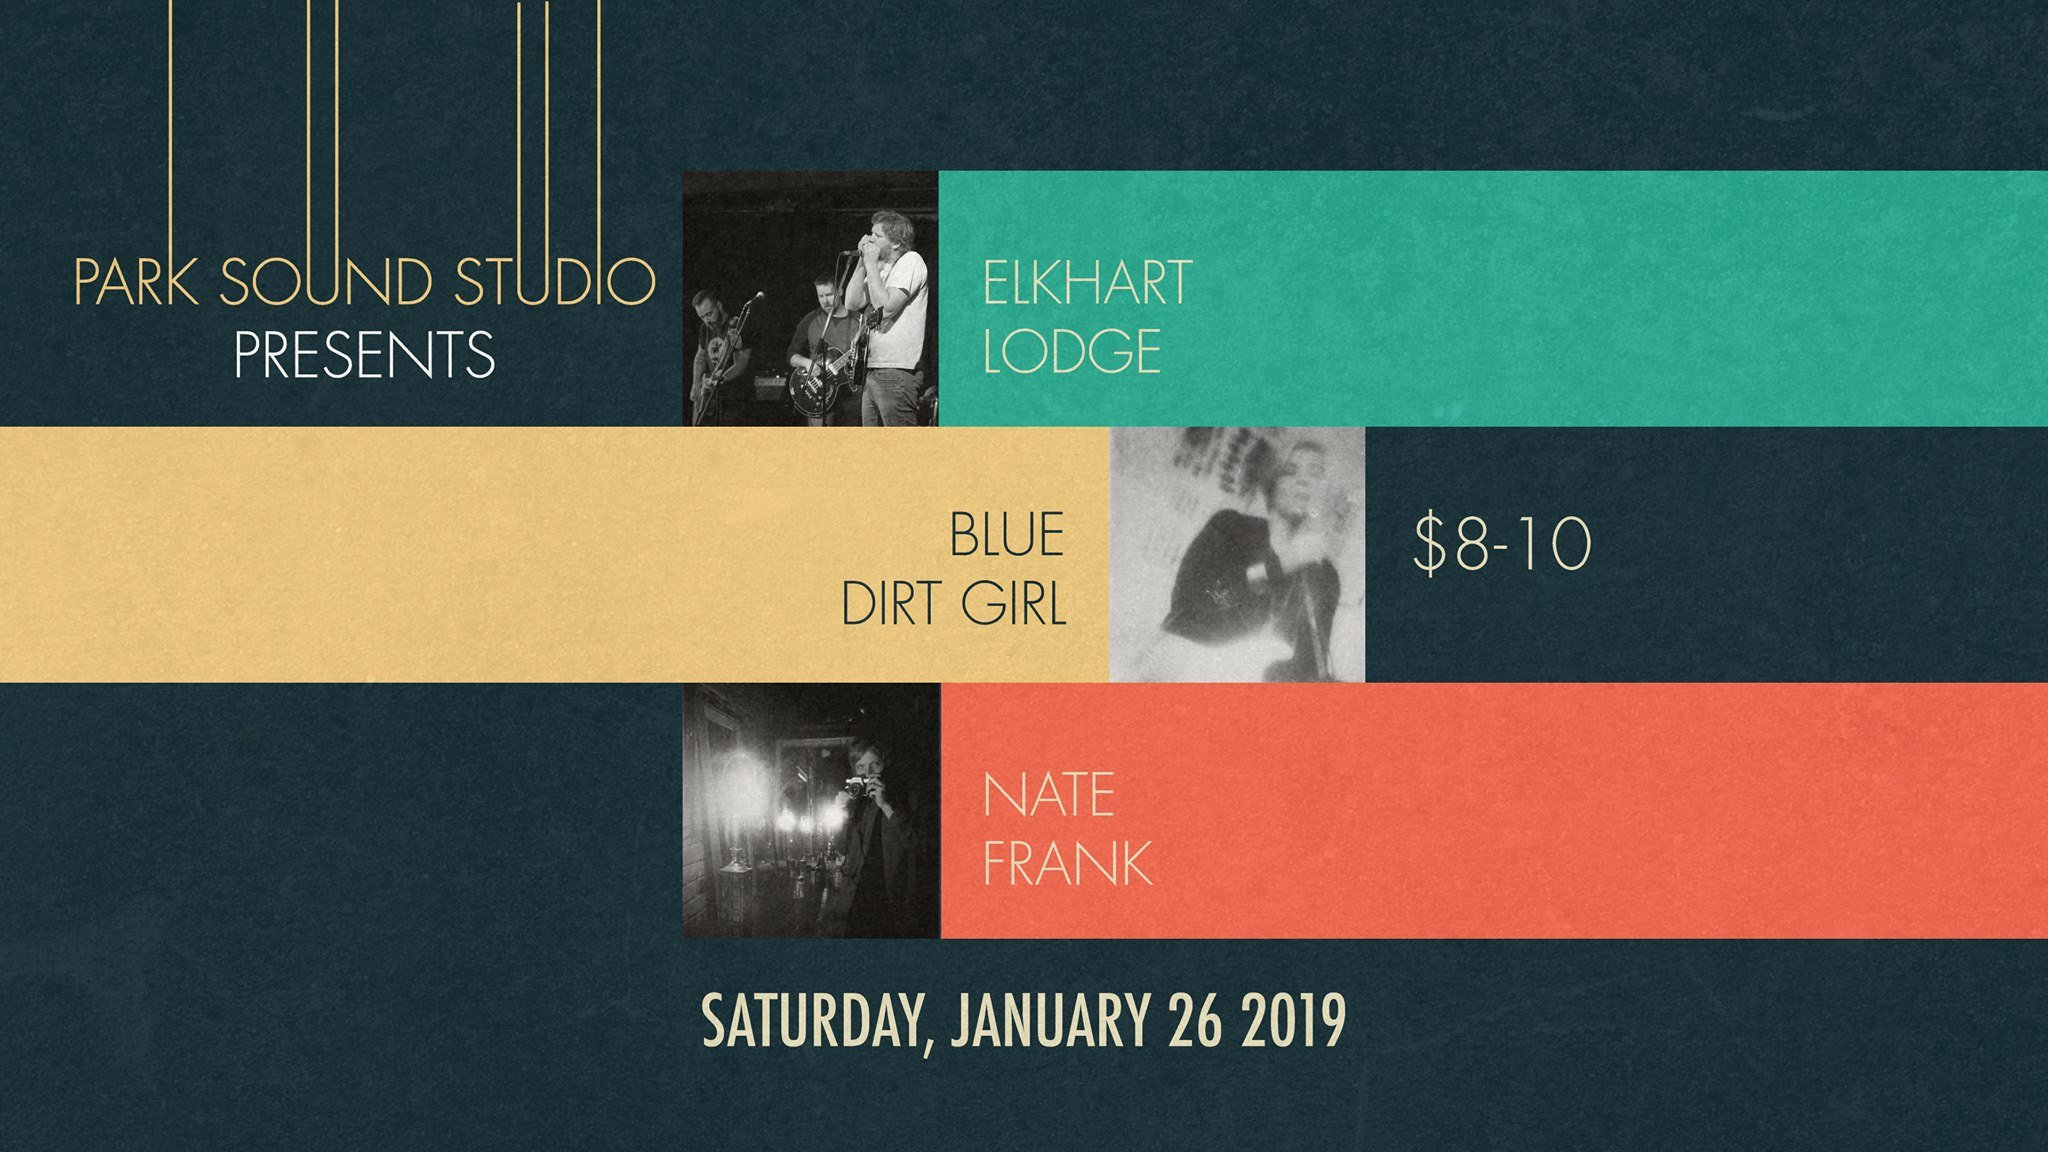 blue dirt girl PArk sound studio show Jan '19